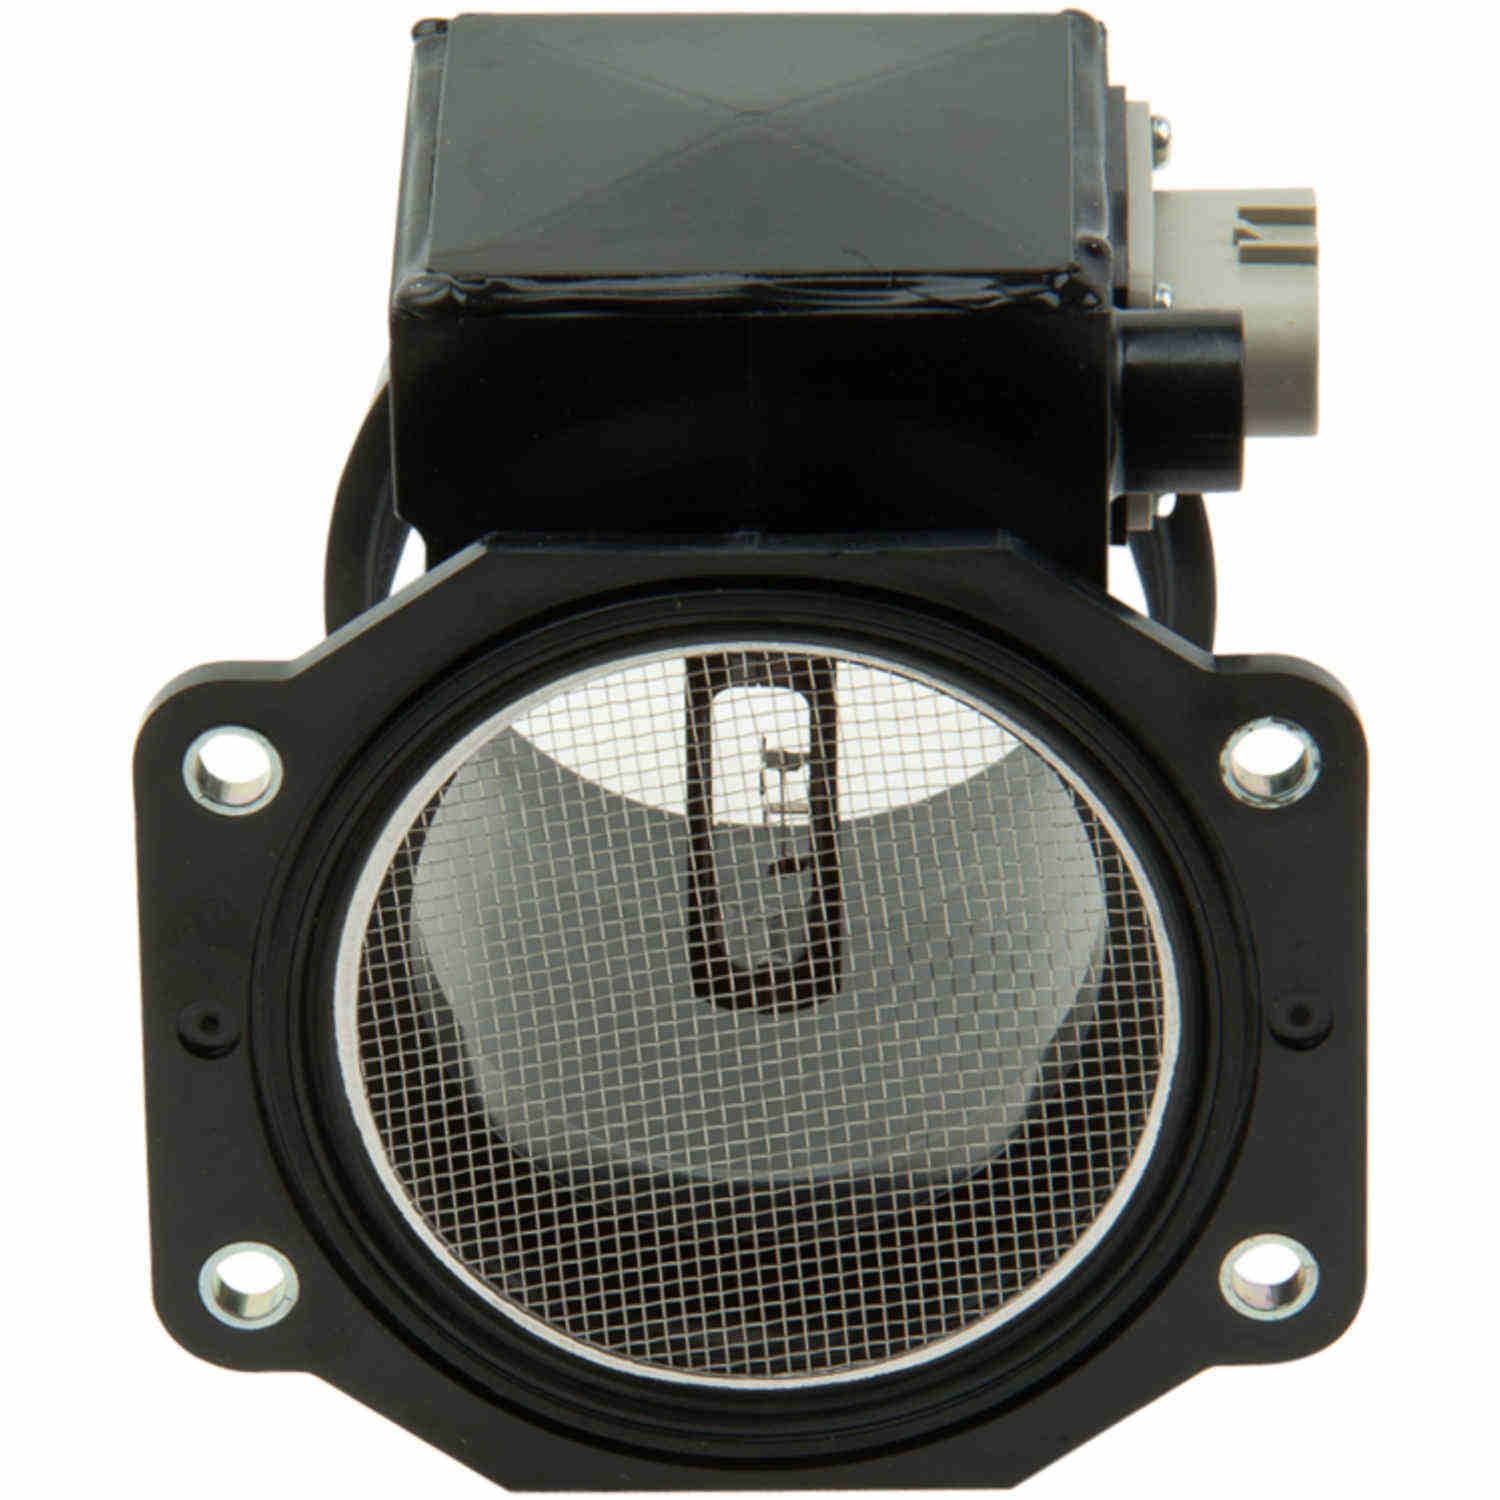 Subaru Mass Air Flow Sensor MAF0096